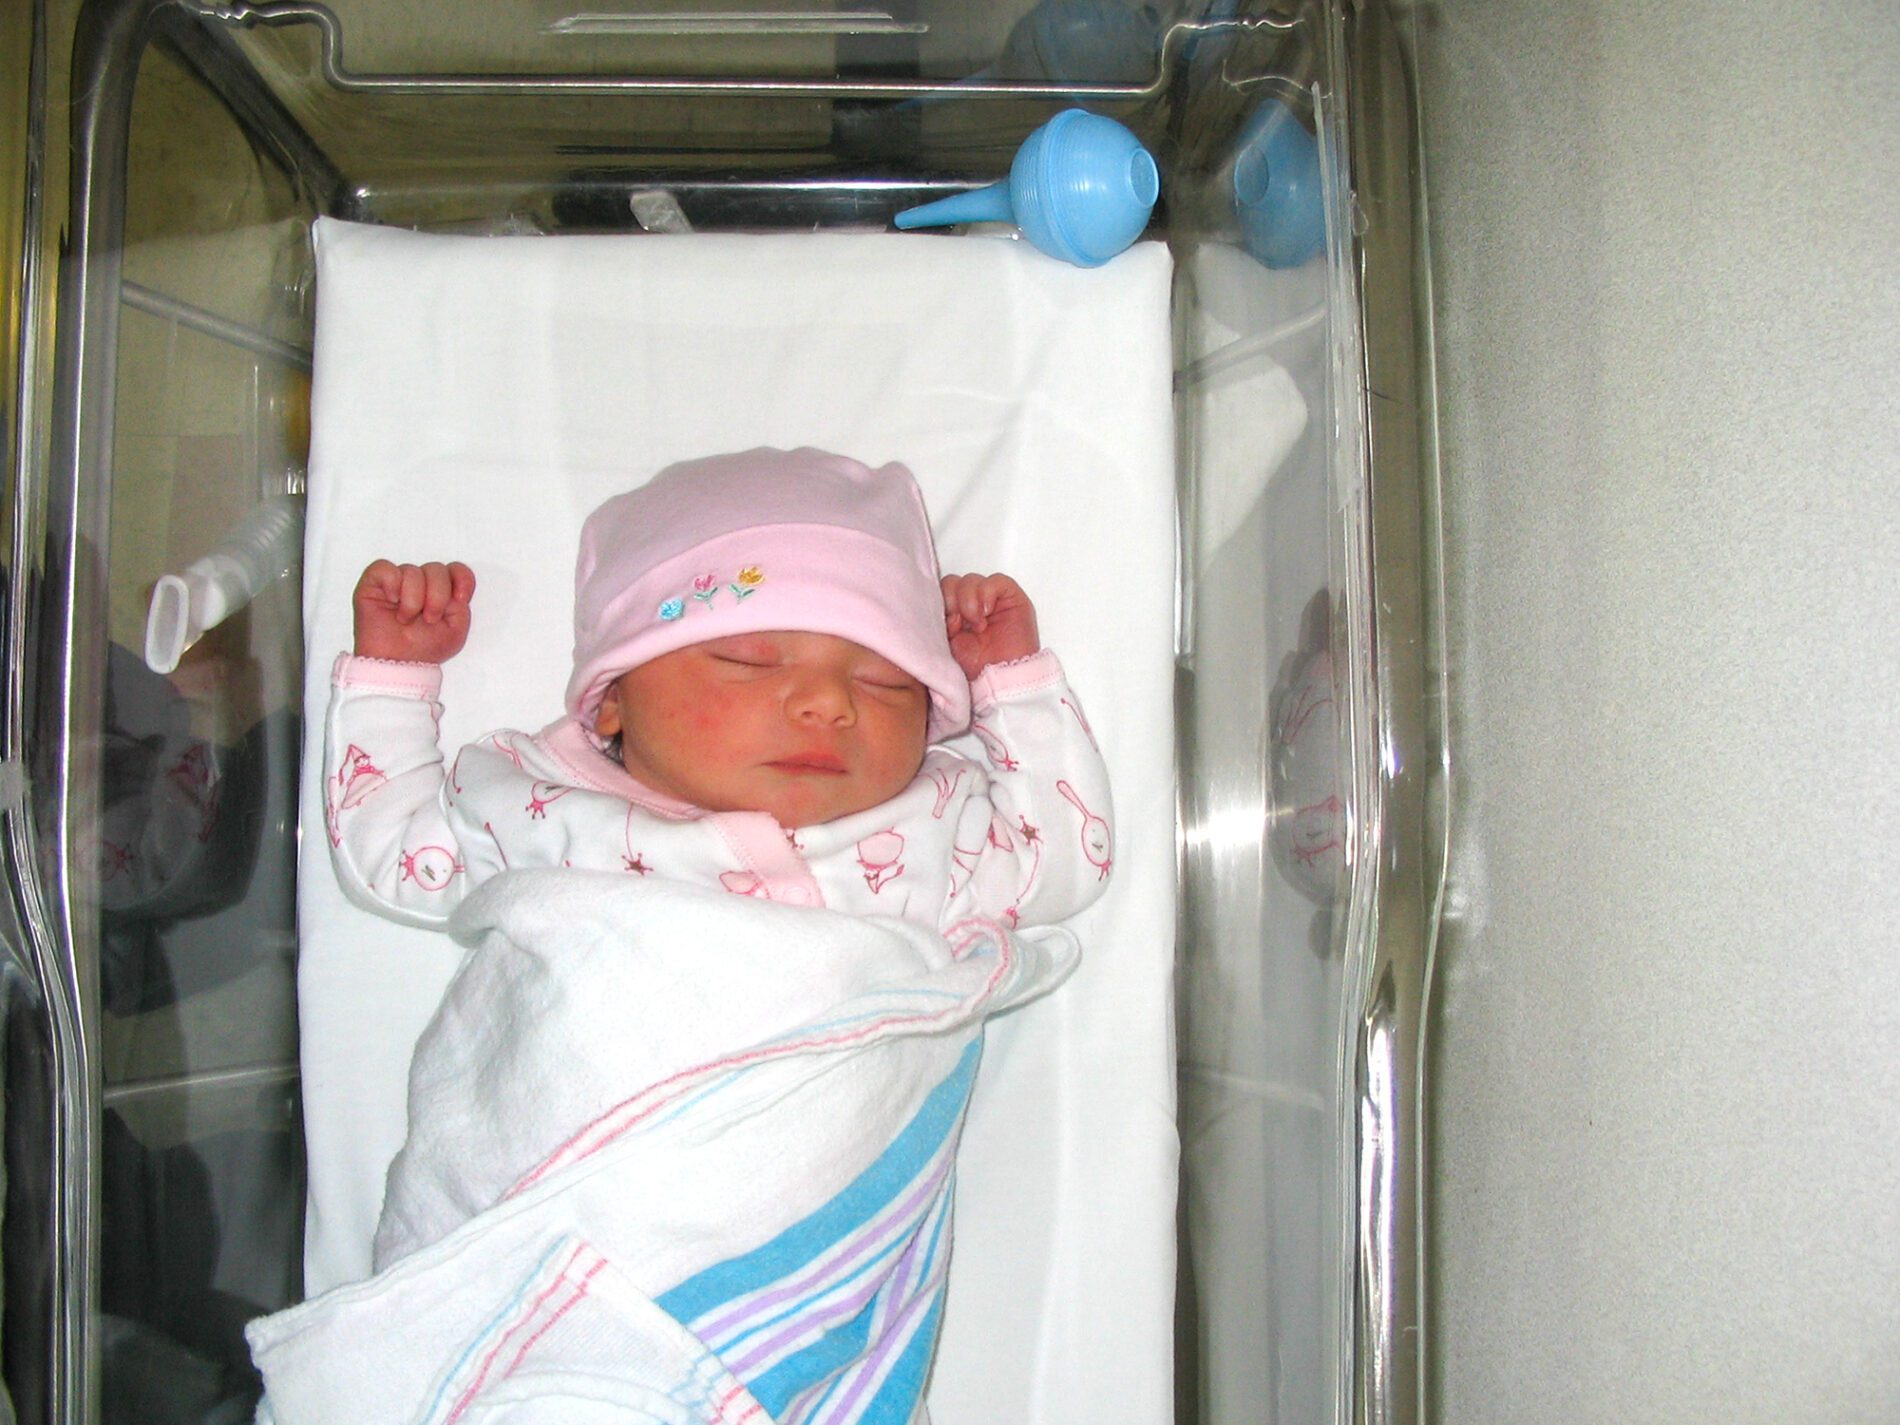 baby girl in the crib at the hospital